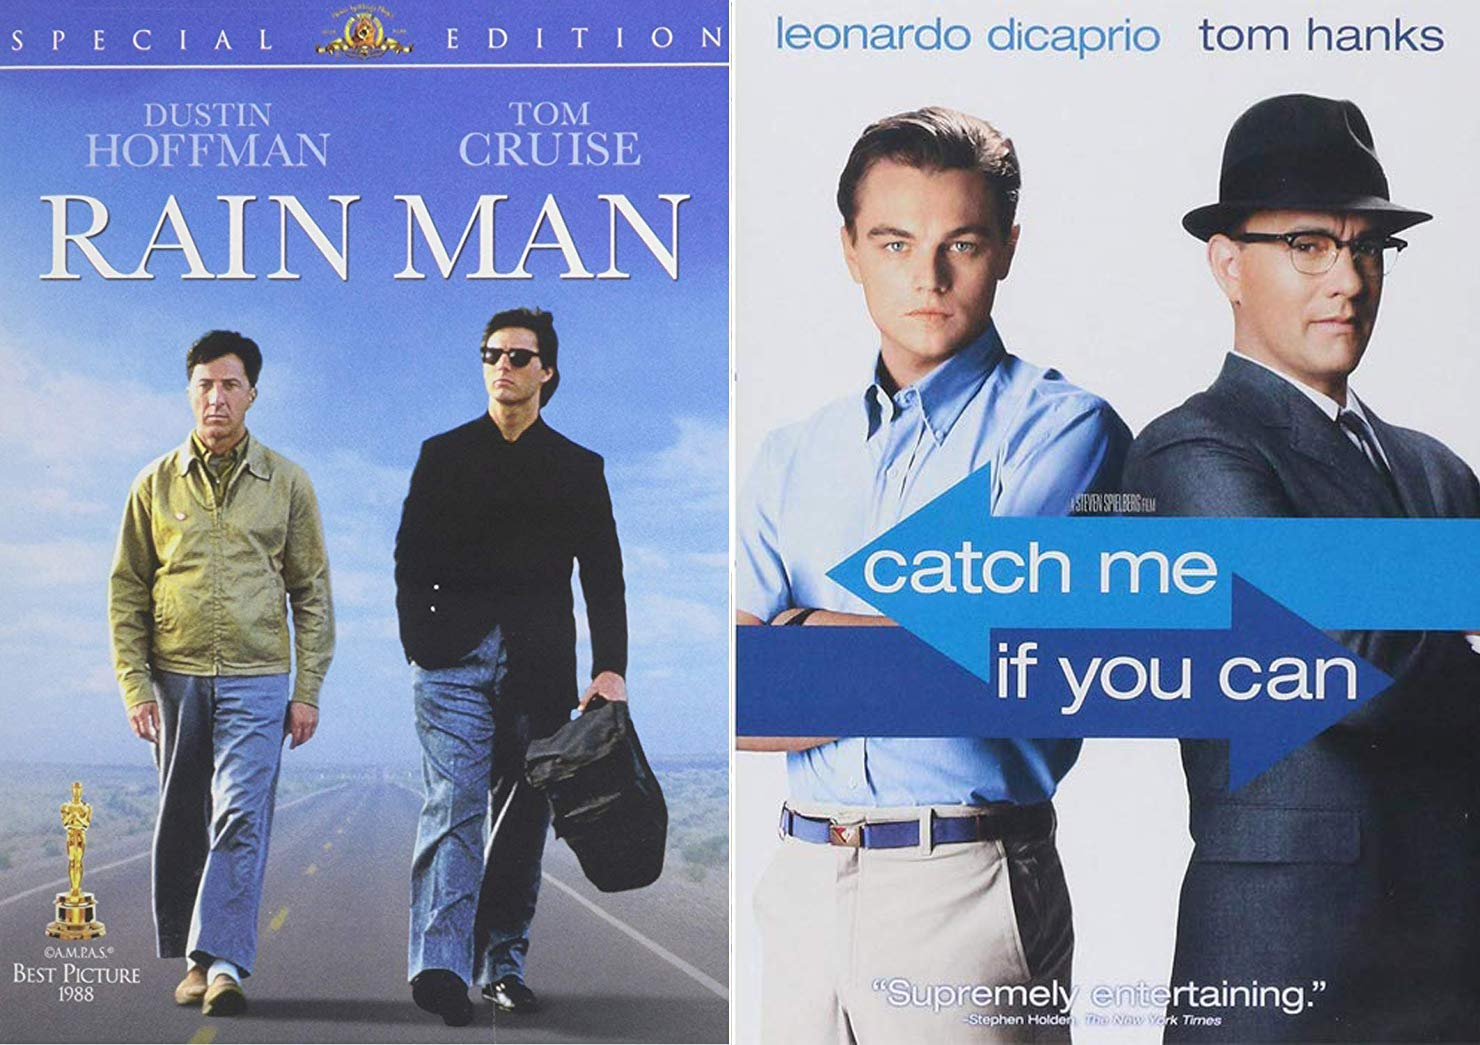 2 Greats Dvd Catch Me If You Can Tom Hanks Leonardo Dicaprio Rain Man Tom Cruise Dustin Hoffman Double Feature Tom Hanks Leonardo Dicaprio Tom Cruise Steven Spielberg Robert Zemeckis